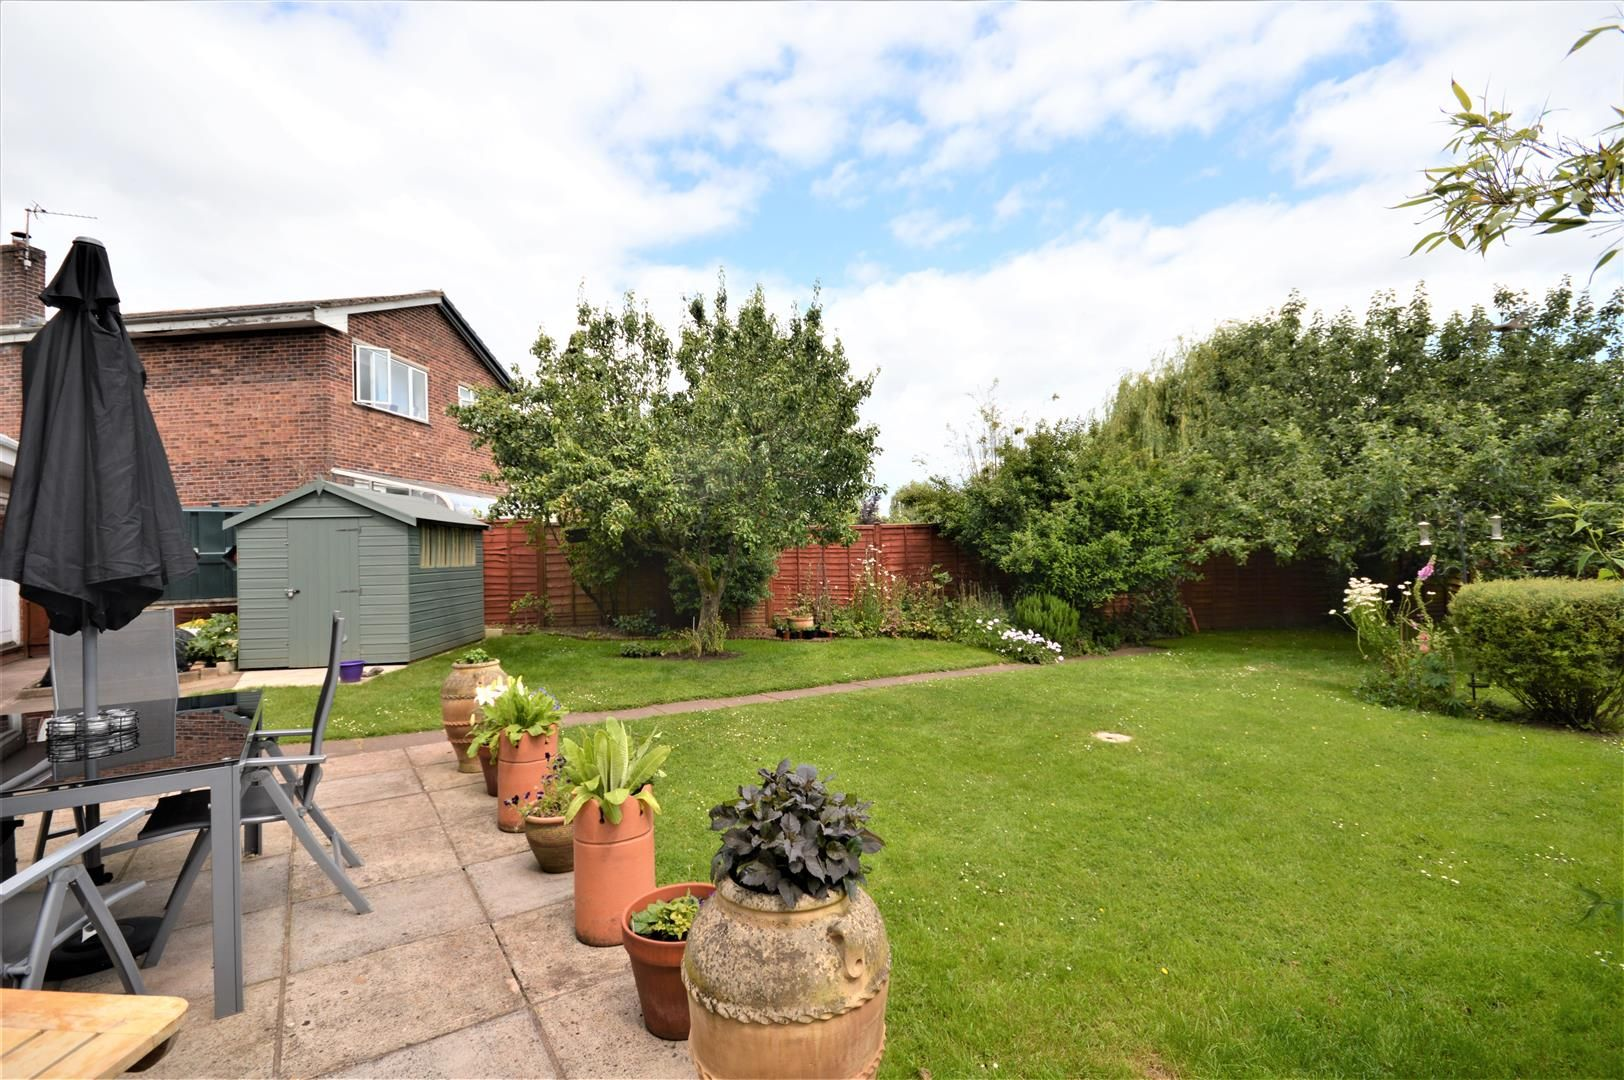 3 bed detached for sale in Kings Caple 8